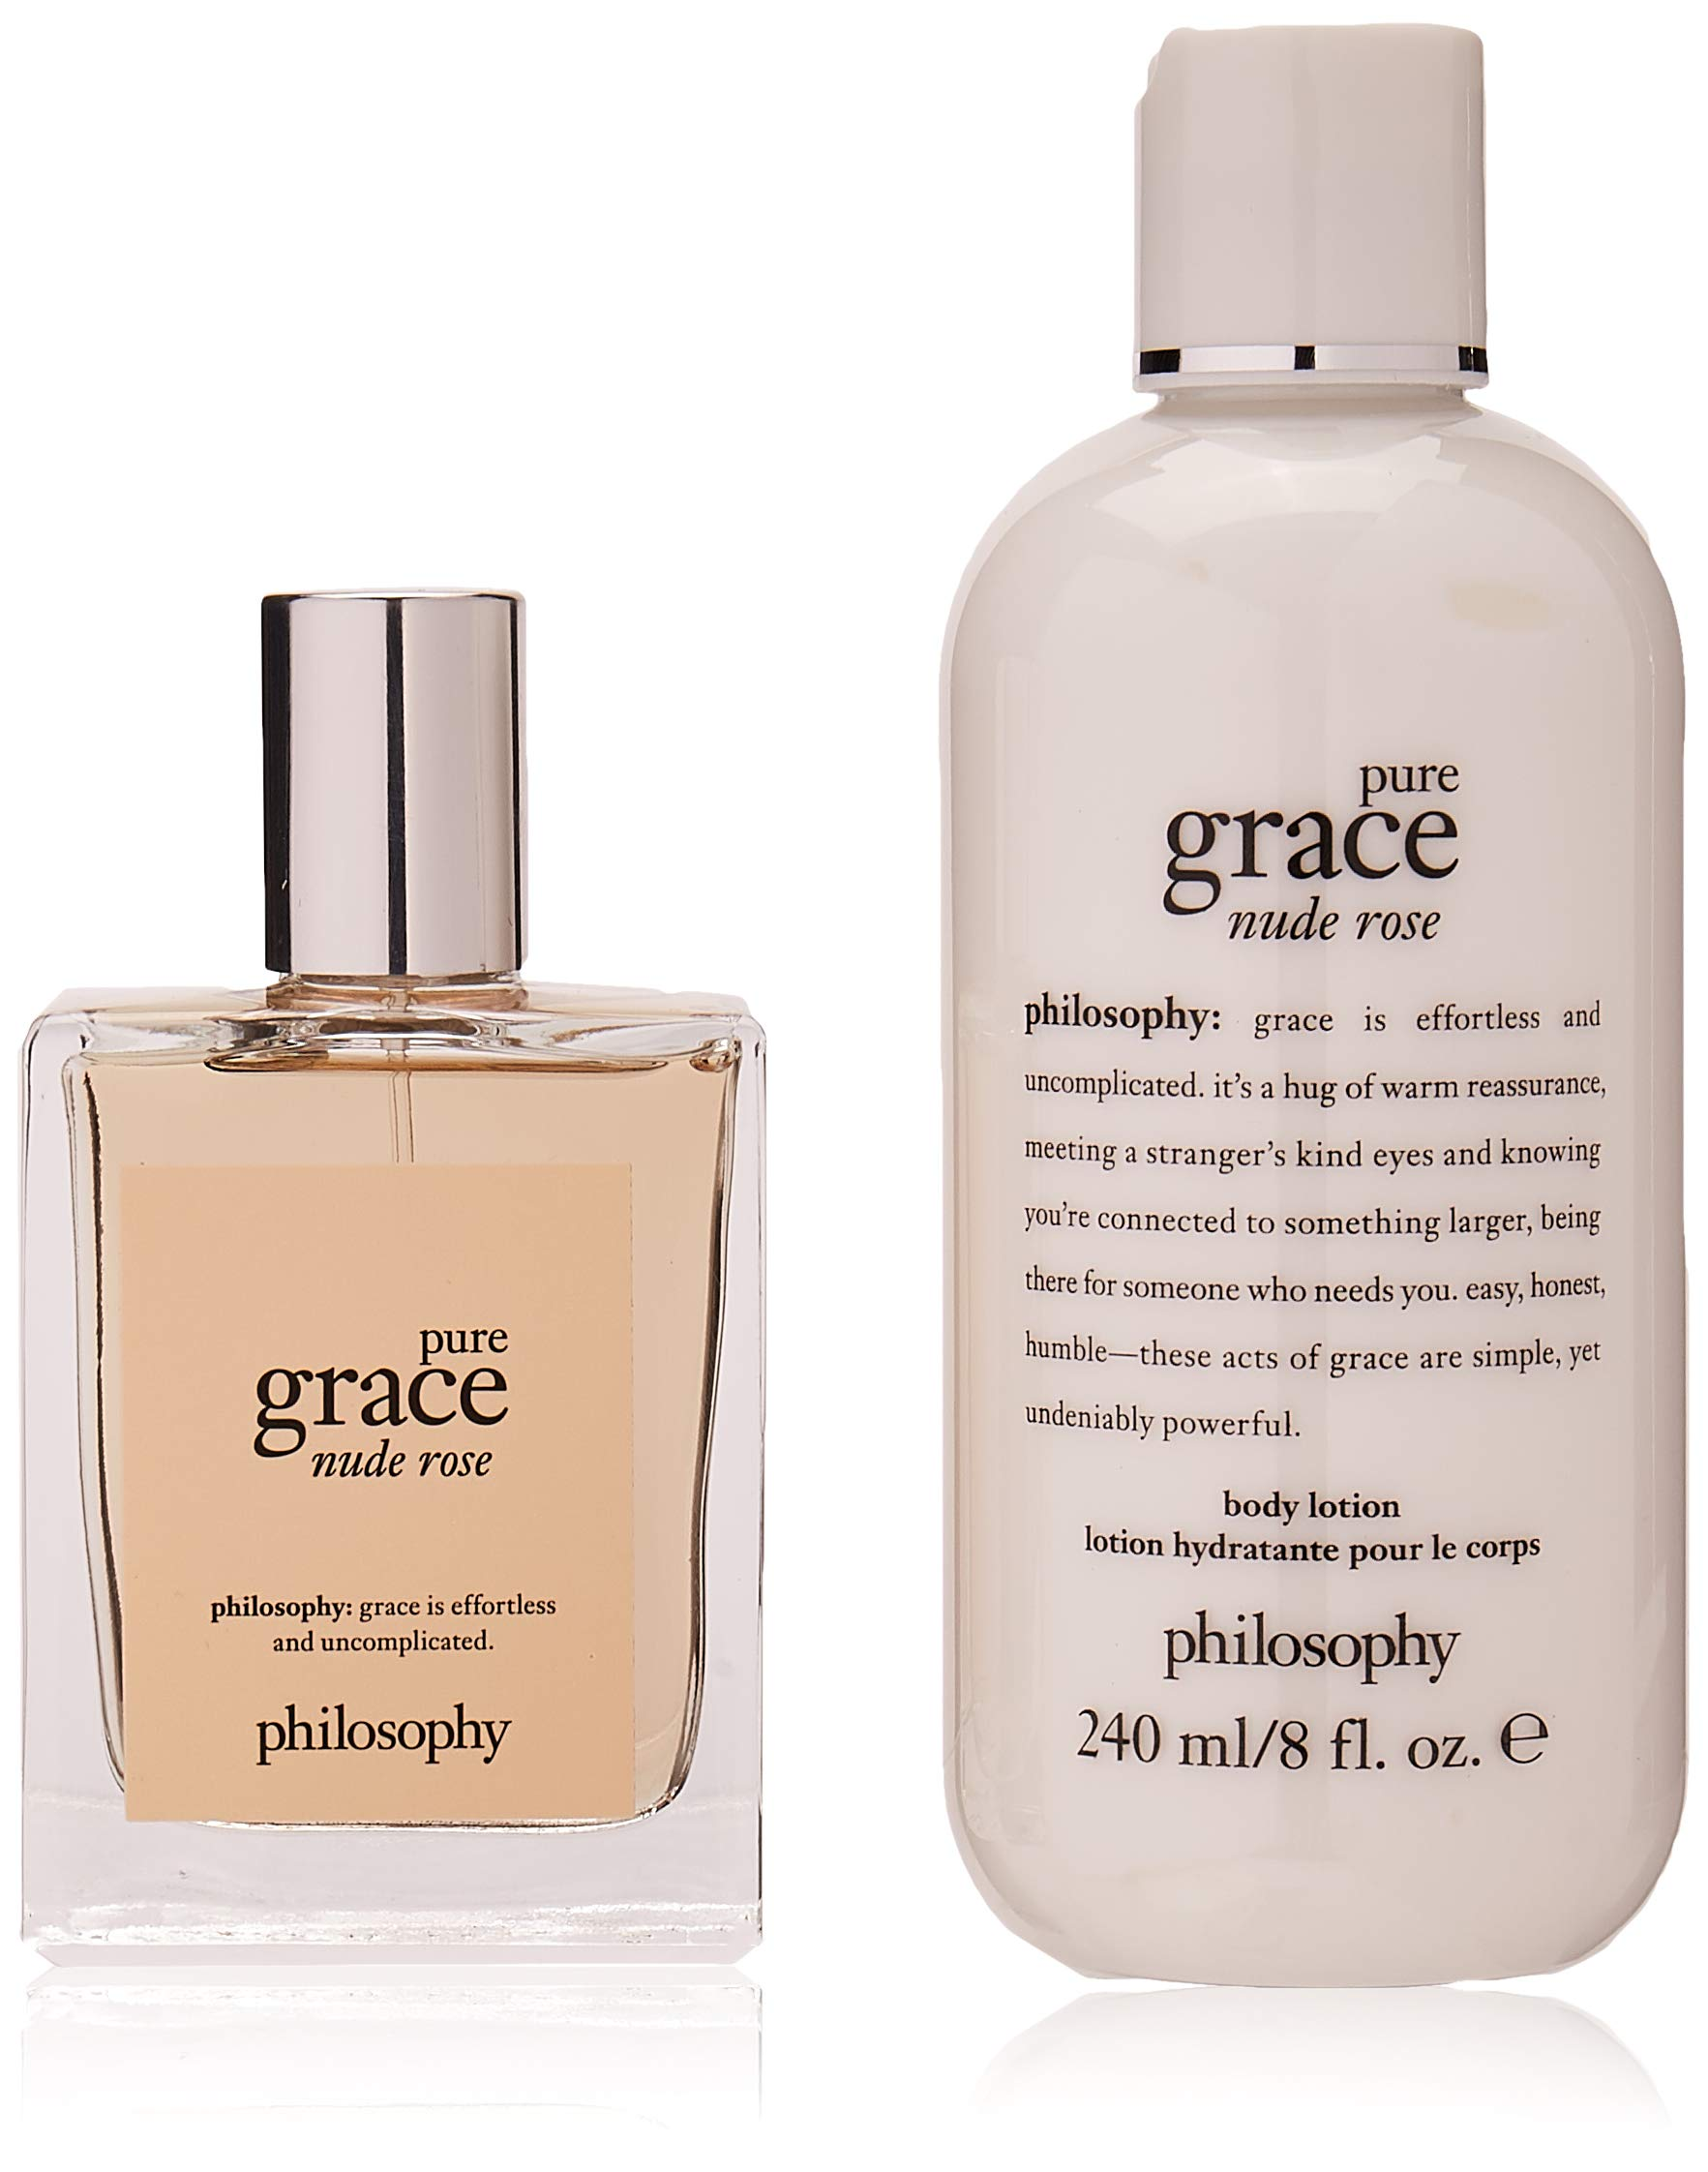 Philosophy Pure Grace Nude Rose Gift Set for Women, 2 Count by Philosophy